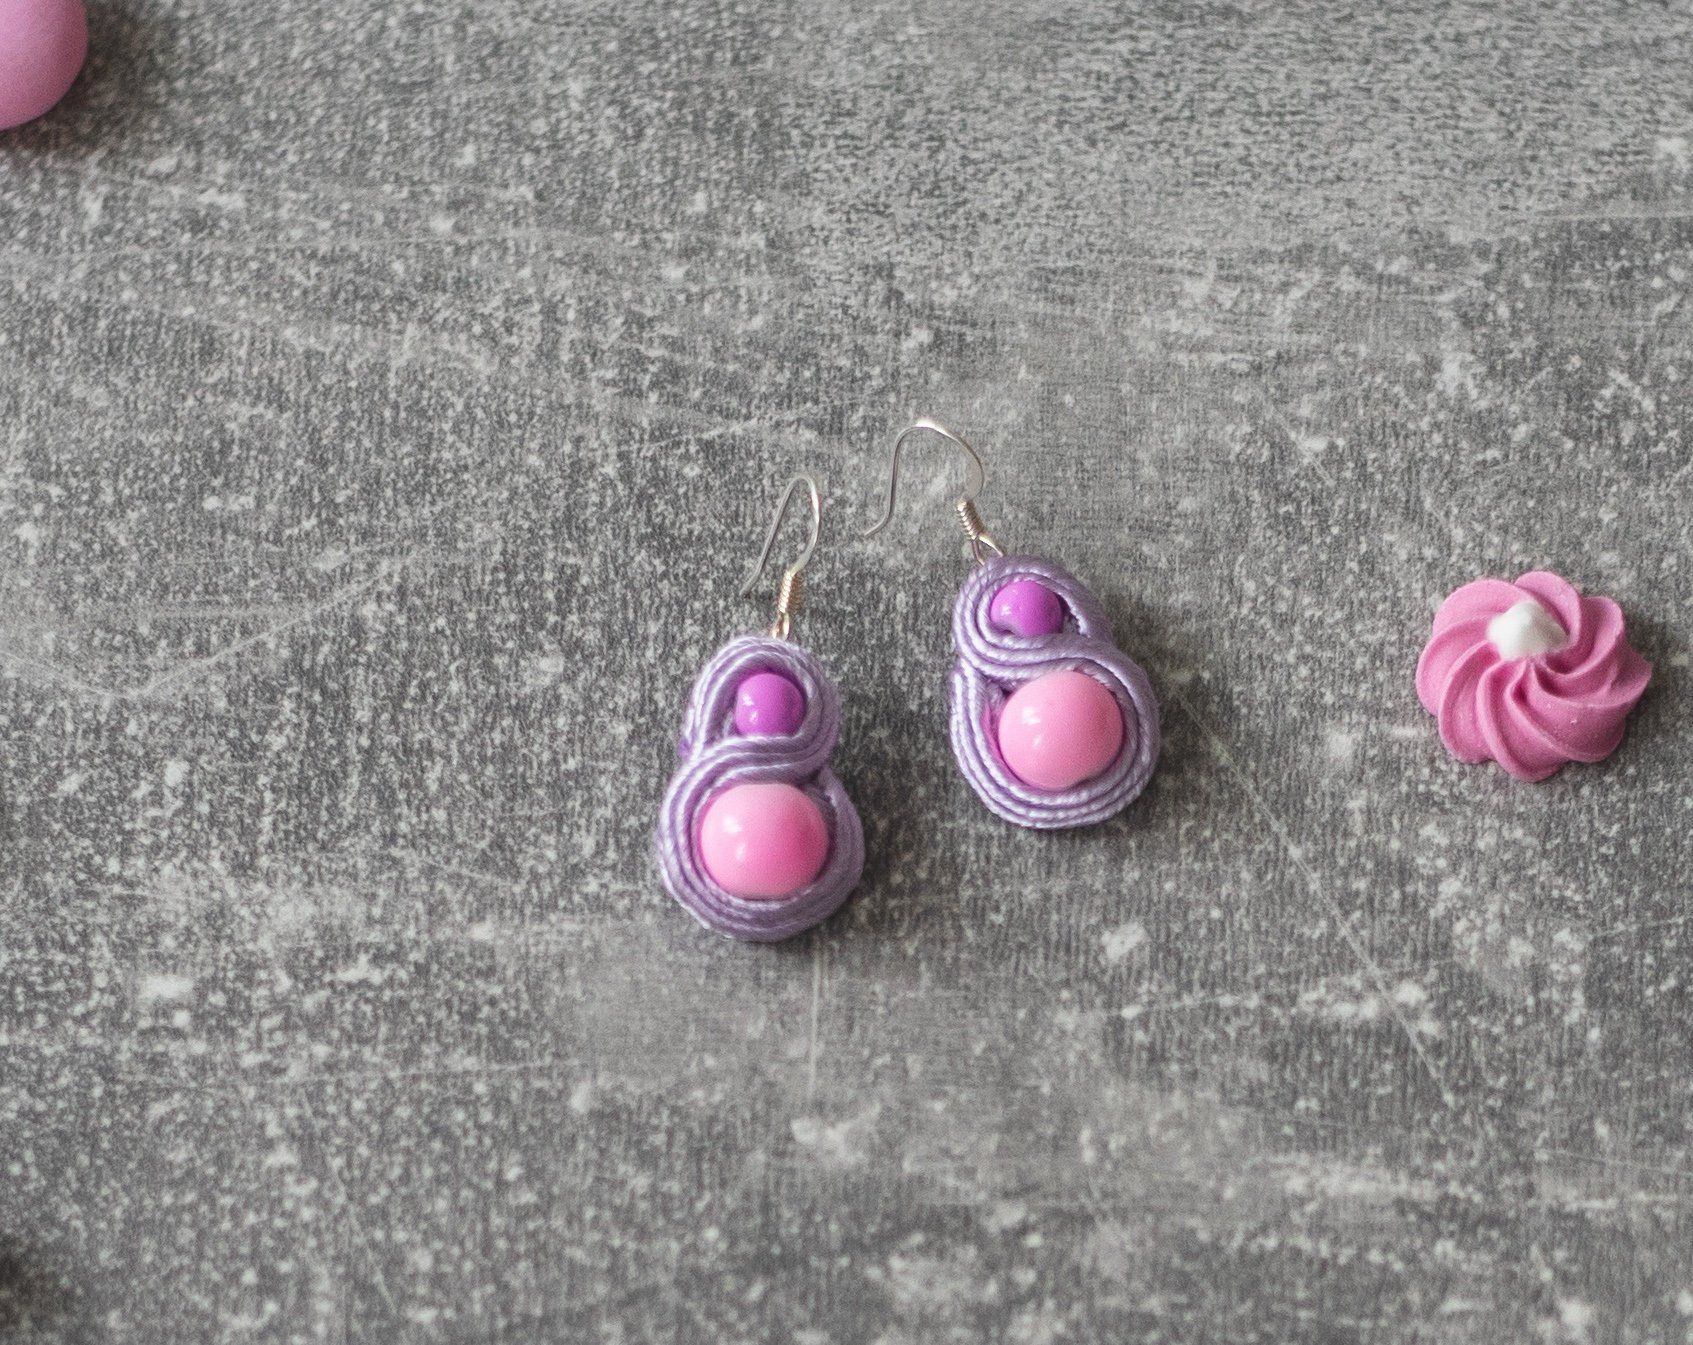 Pastel Earrings / Soutache Jewelry / Pastel Goth Earrings / Nickel Free / Glass beads / Simple Earrings / Casual Goth Store #casualgoth